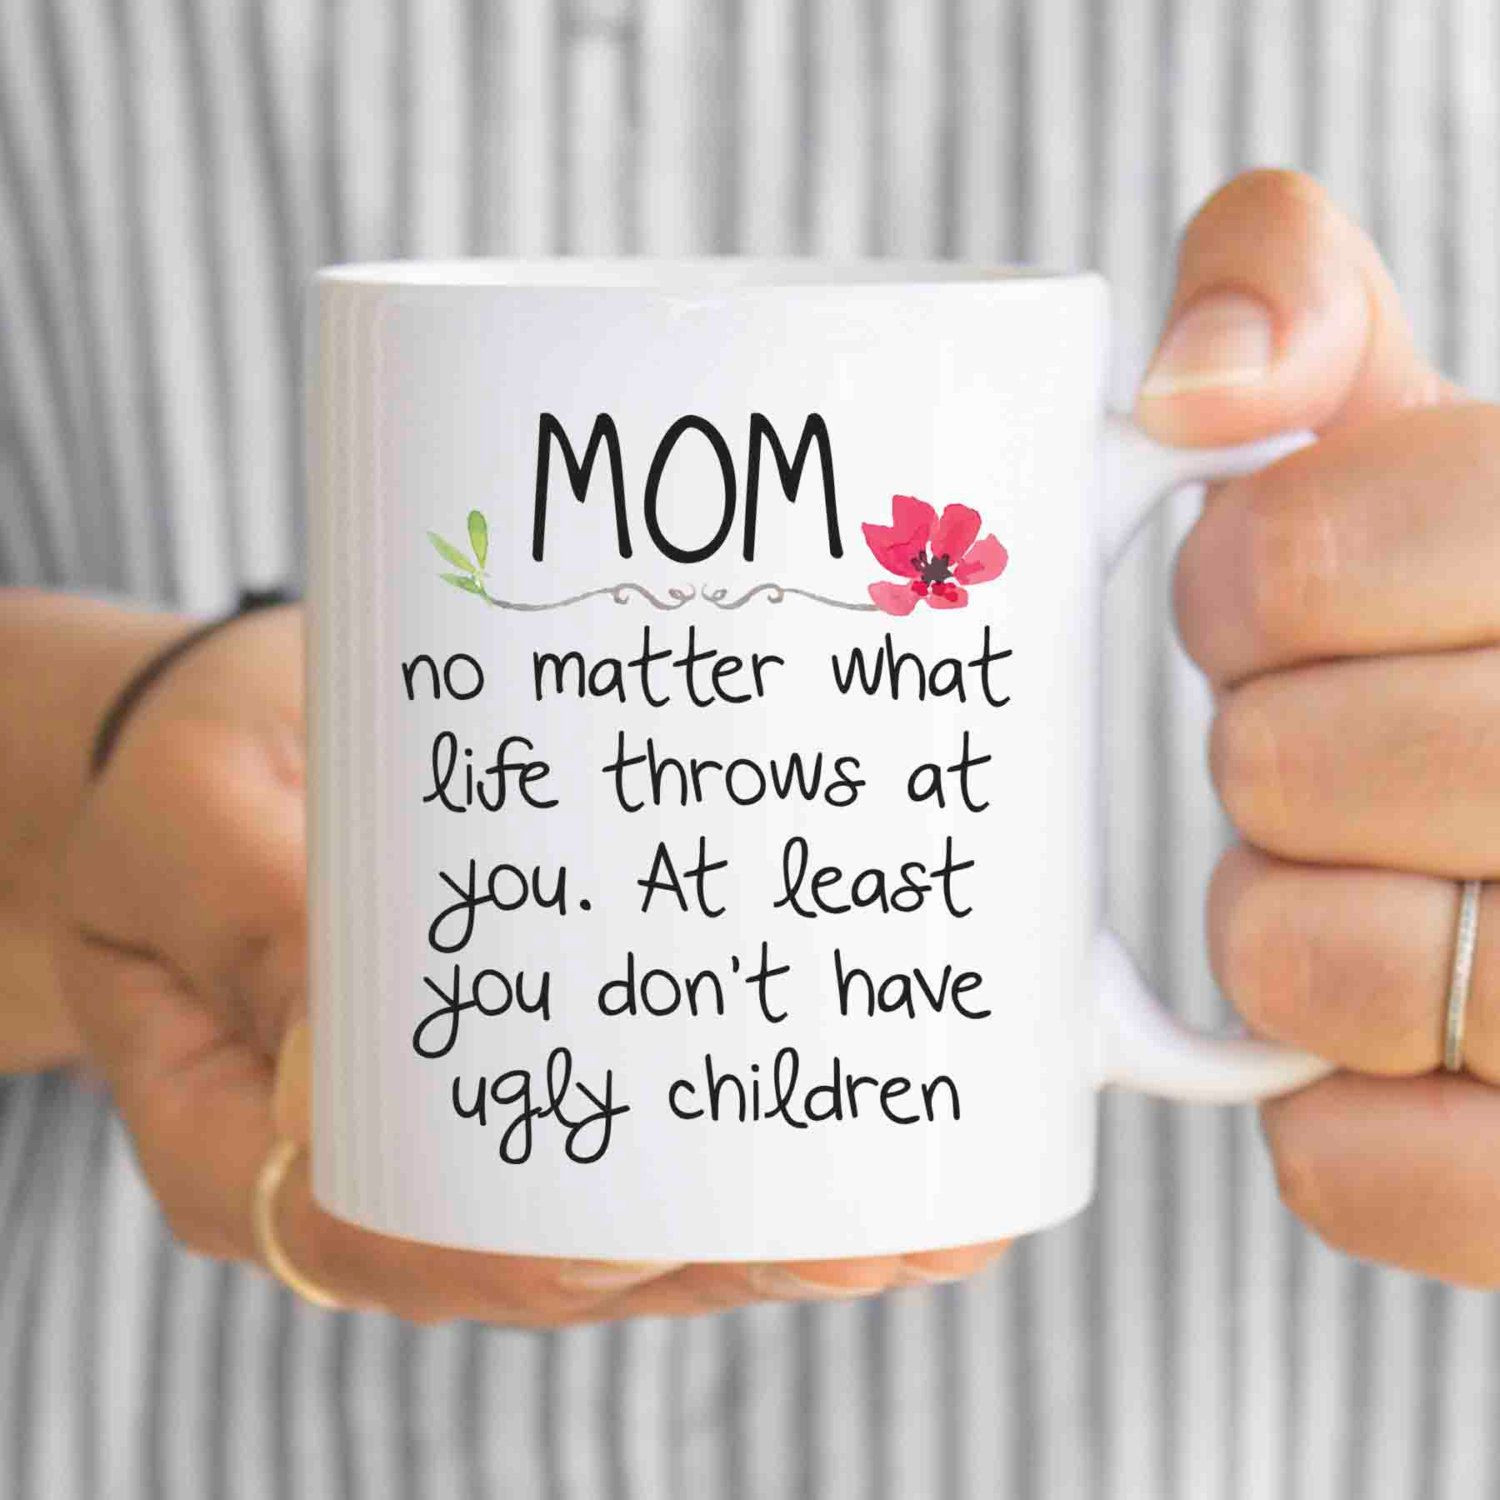 Mother'S Day 2019 Gift Ideas  15 Unique Mother s Day Gifts Ideas 2019 For Mom – Best